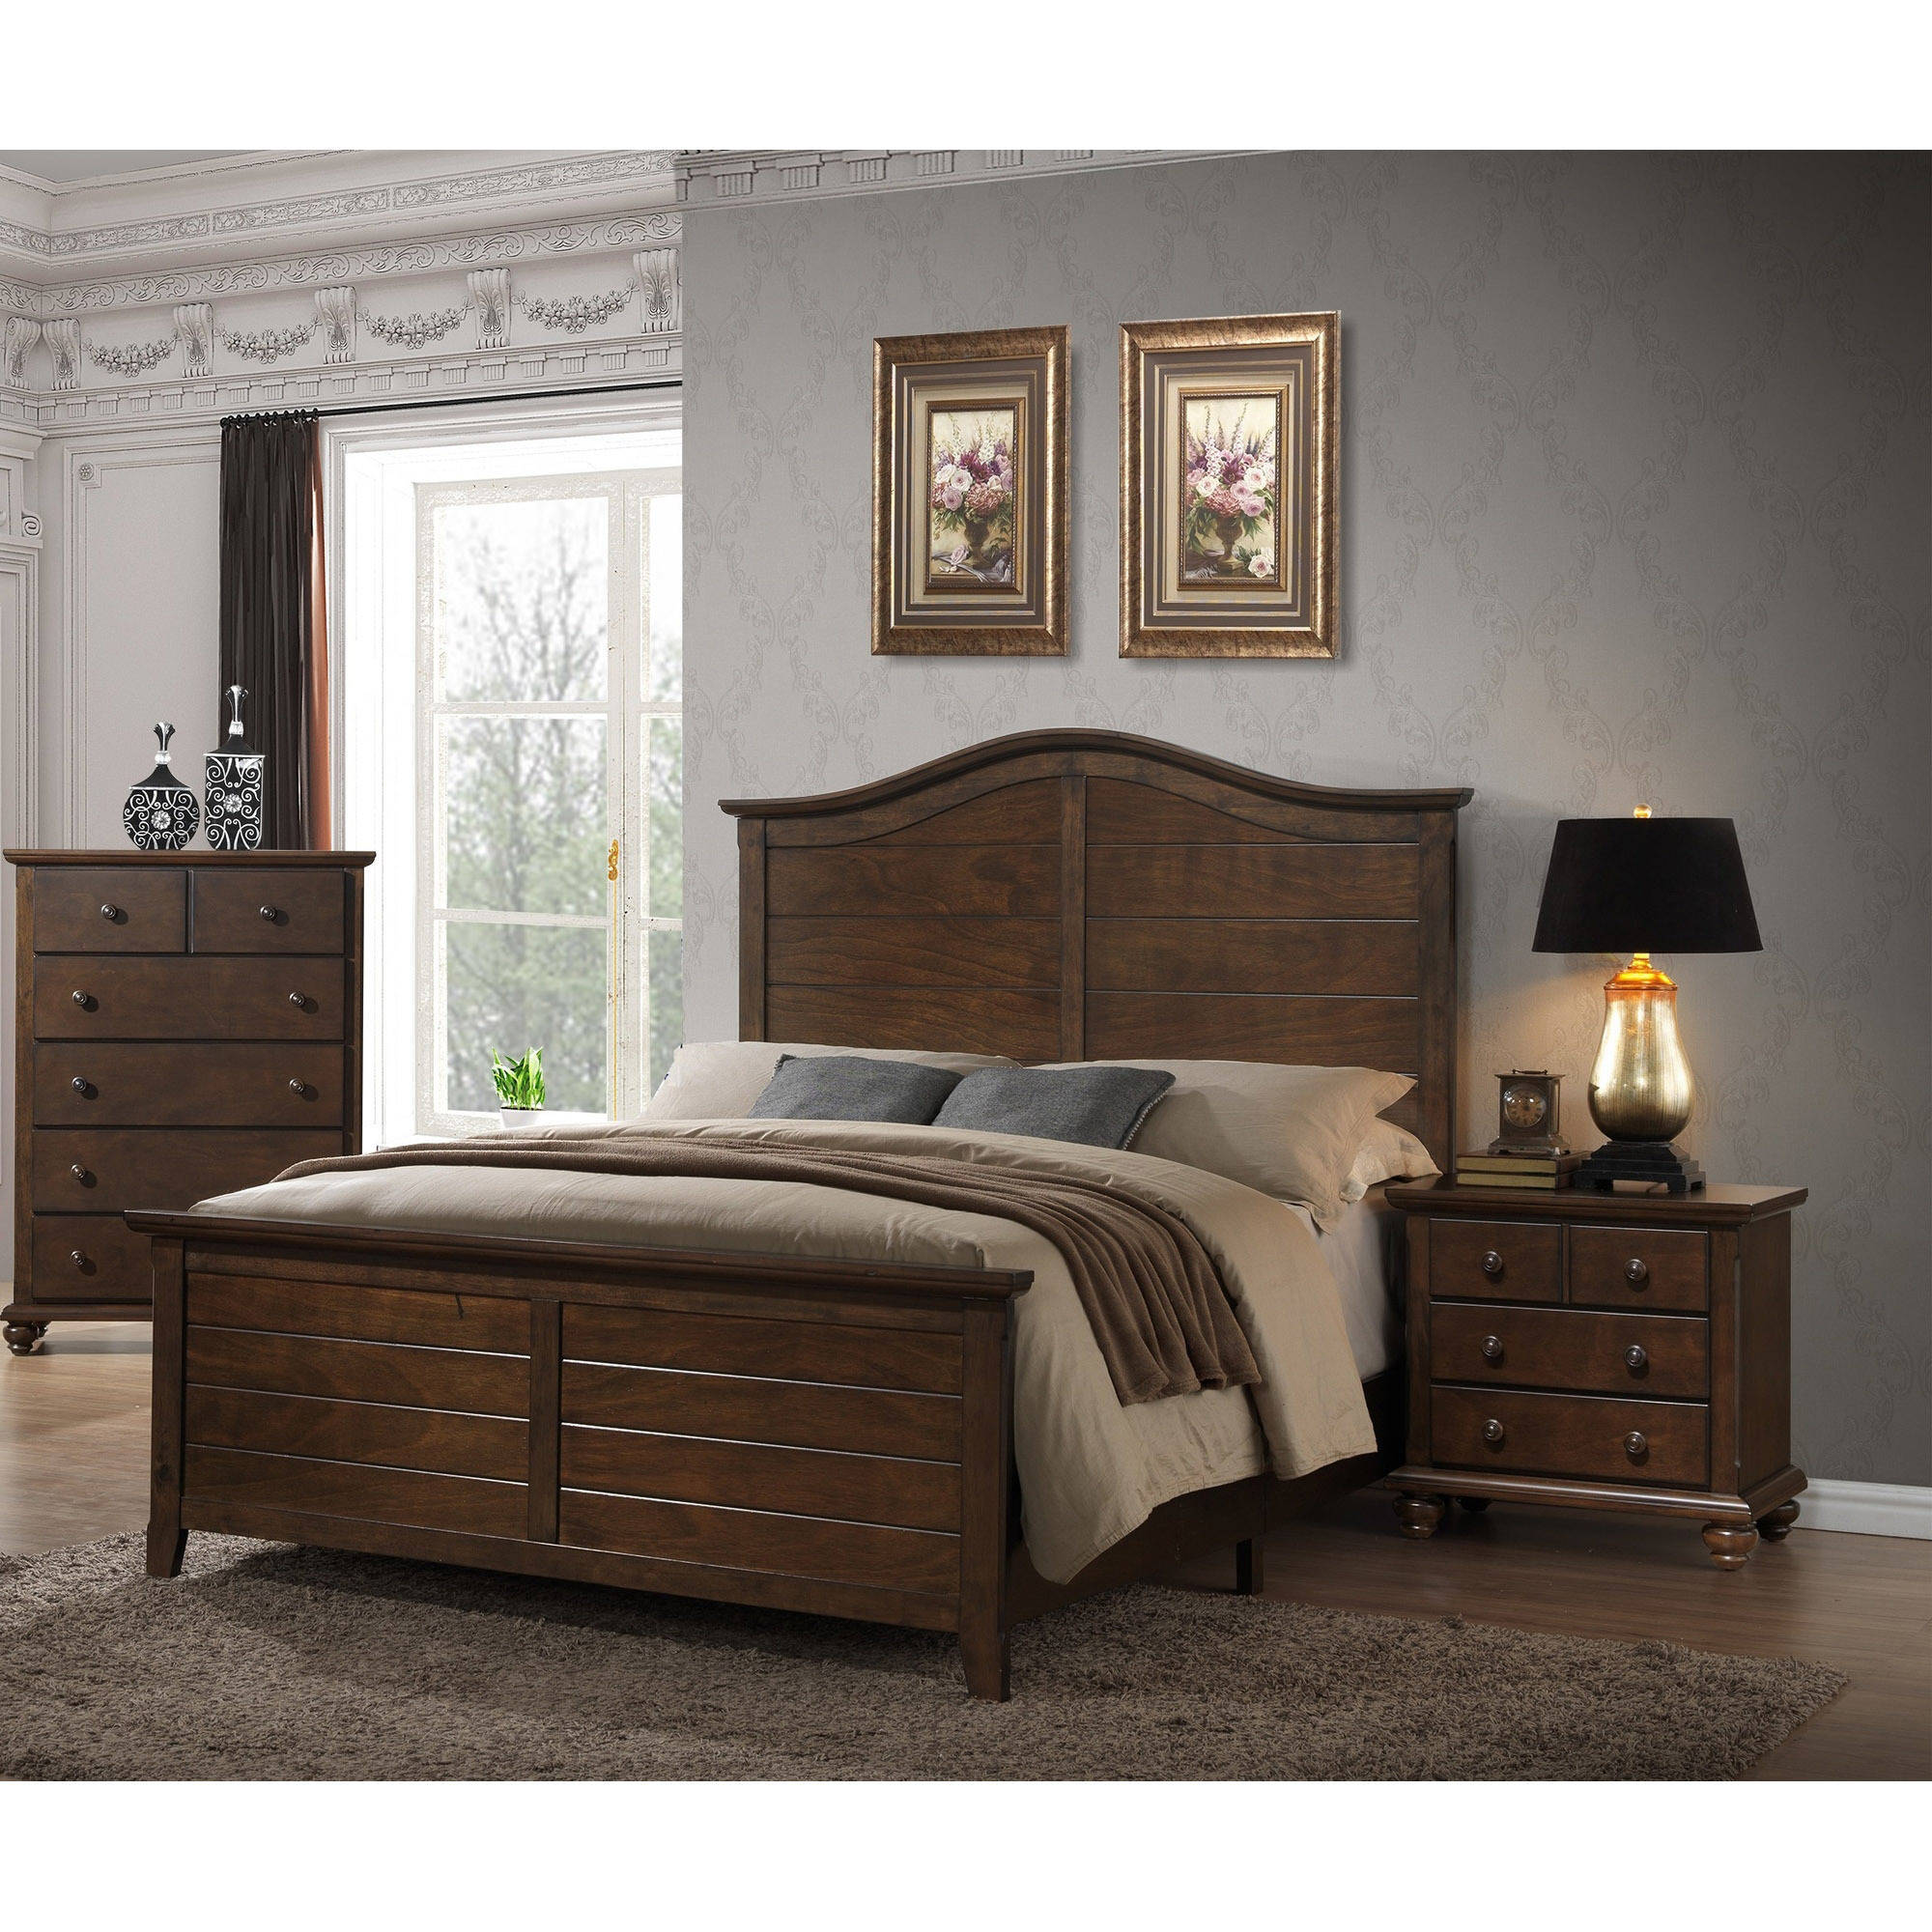 Better Homes and Gardens Hillbrooke Collection, Mocha Finish